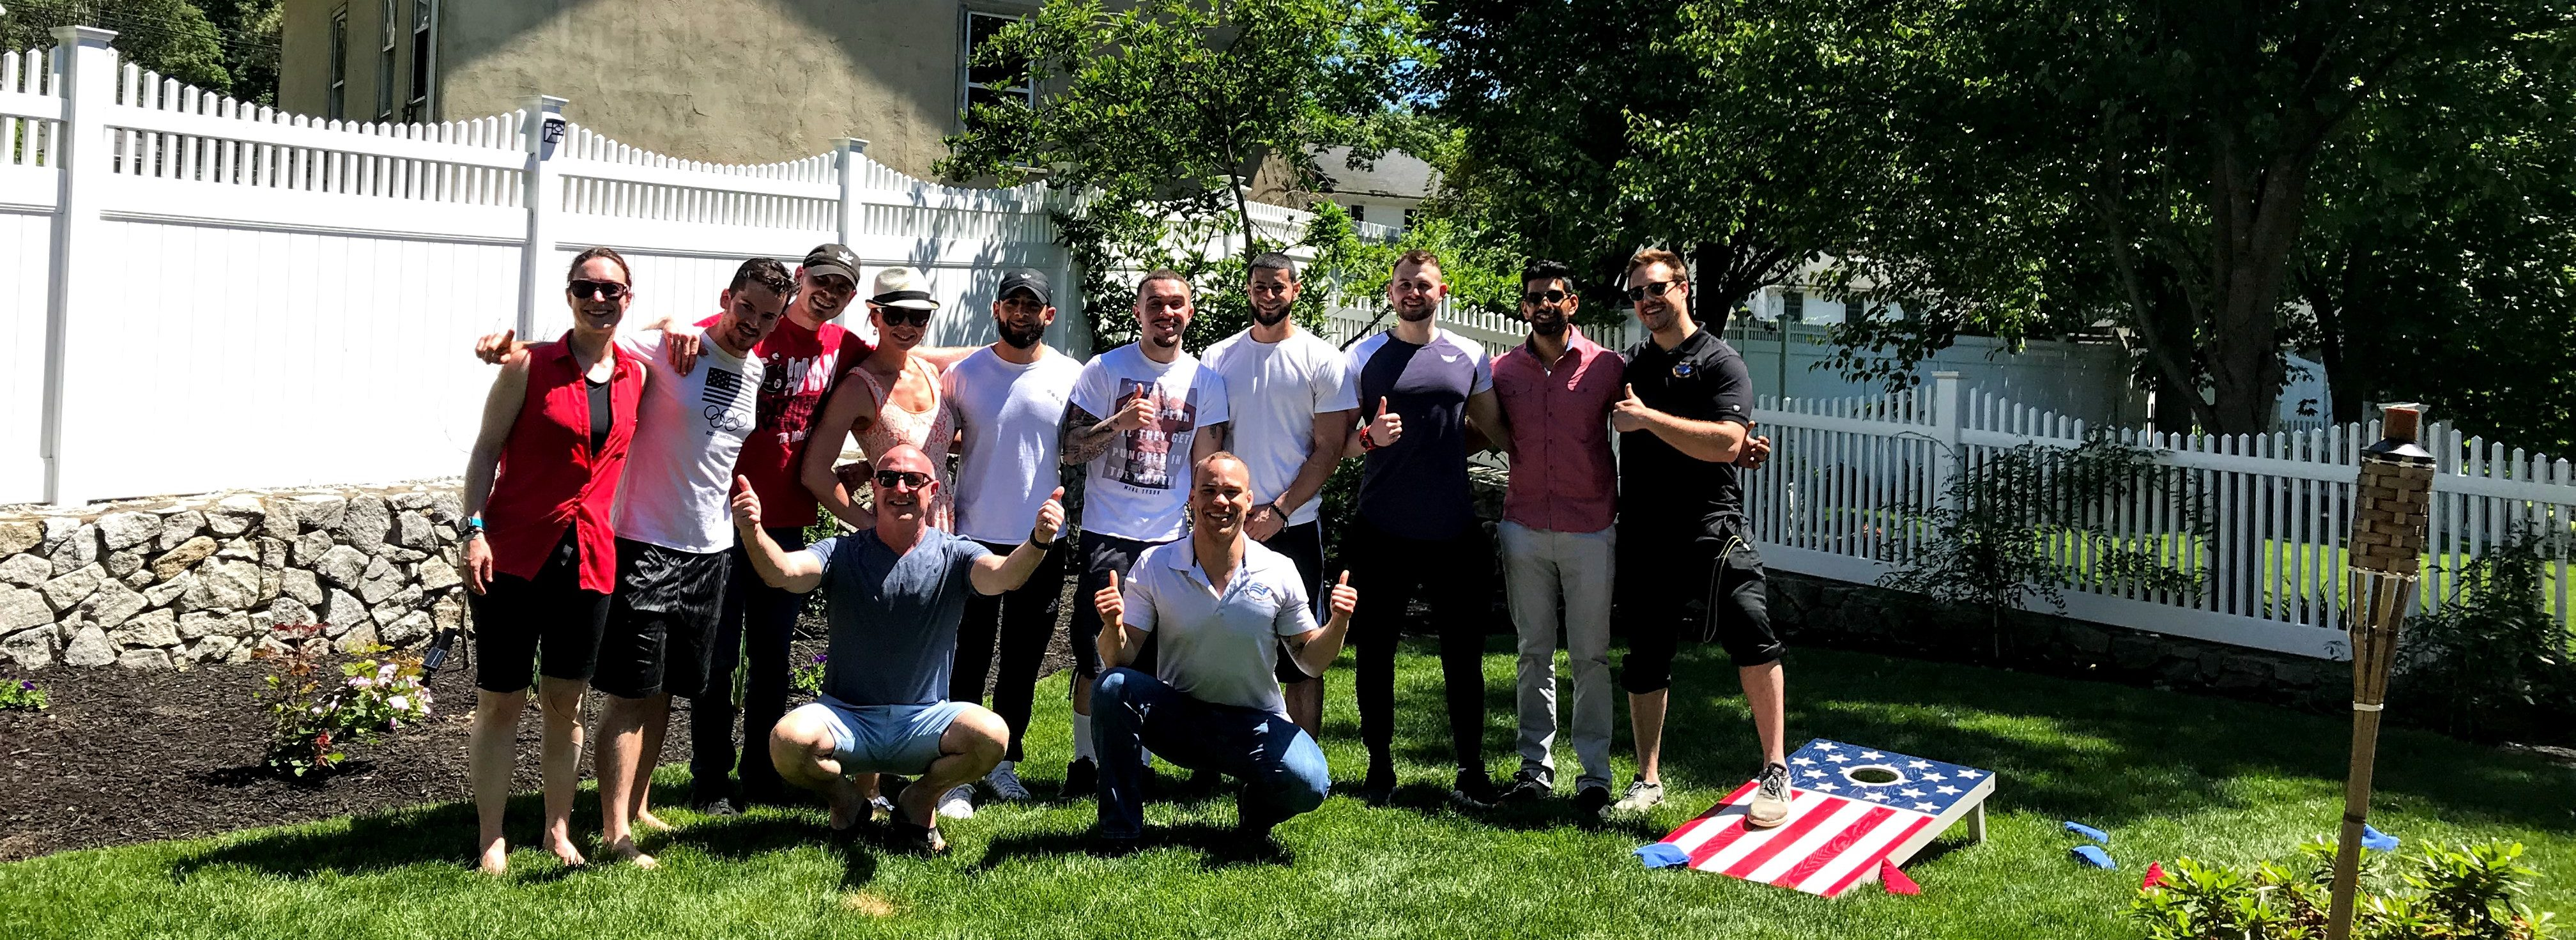 Golden Home Fitness Summer 2019 BBQ Team Picture